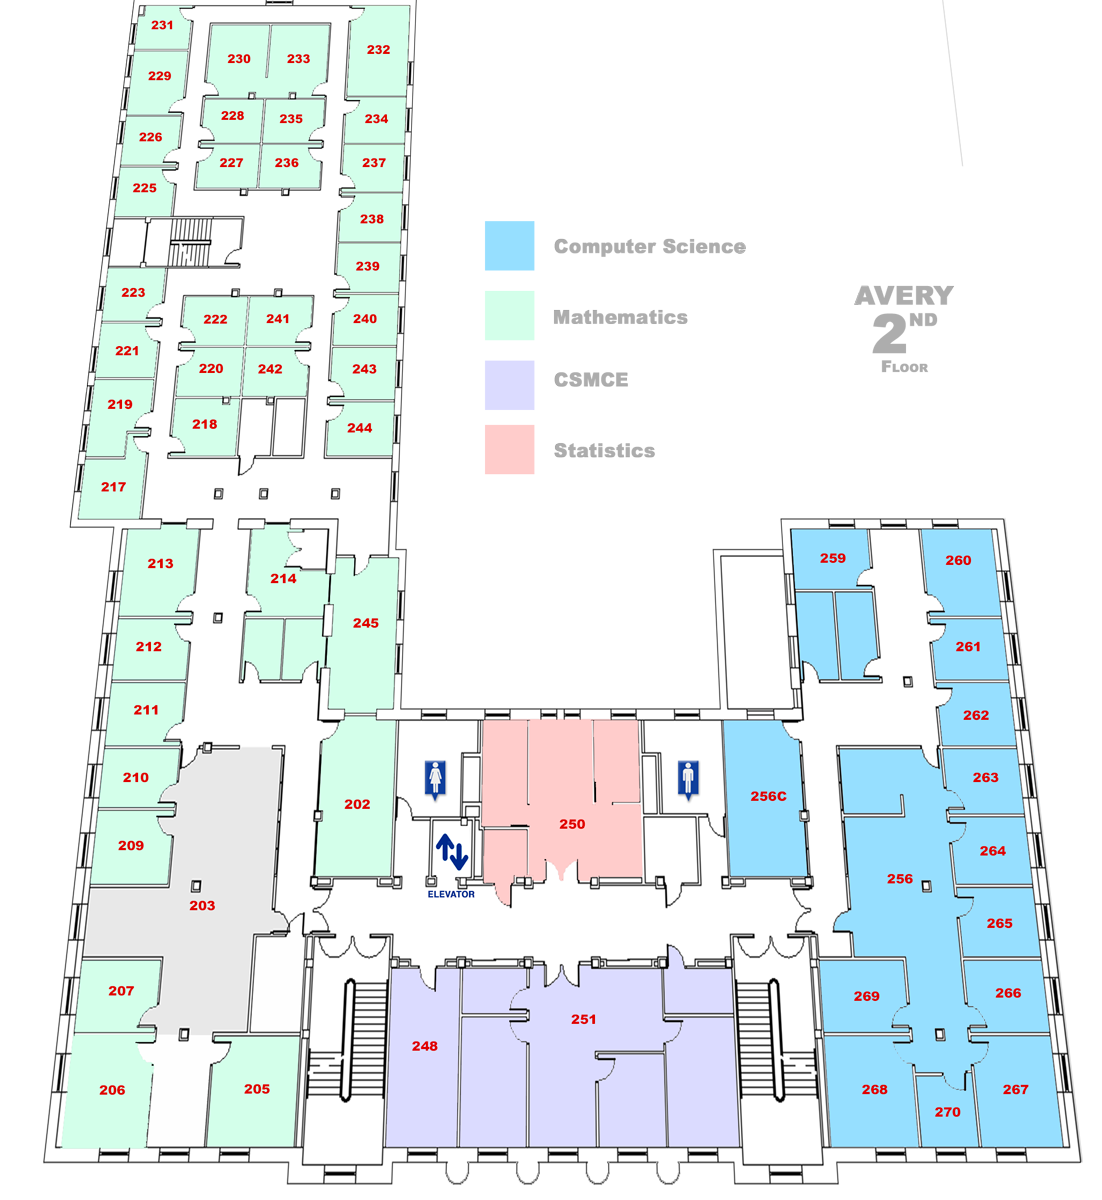 map of Avery Hall Second floor